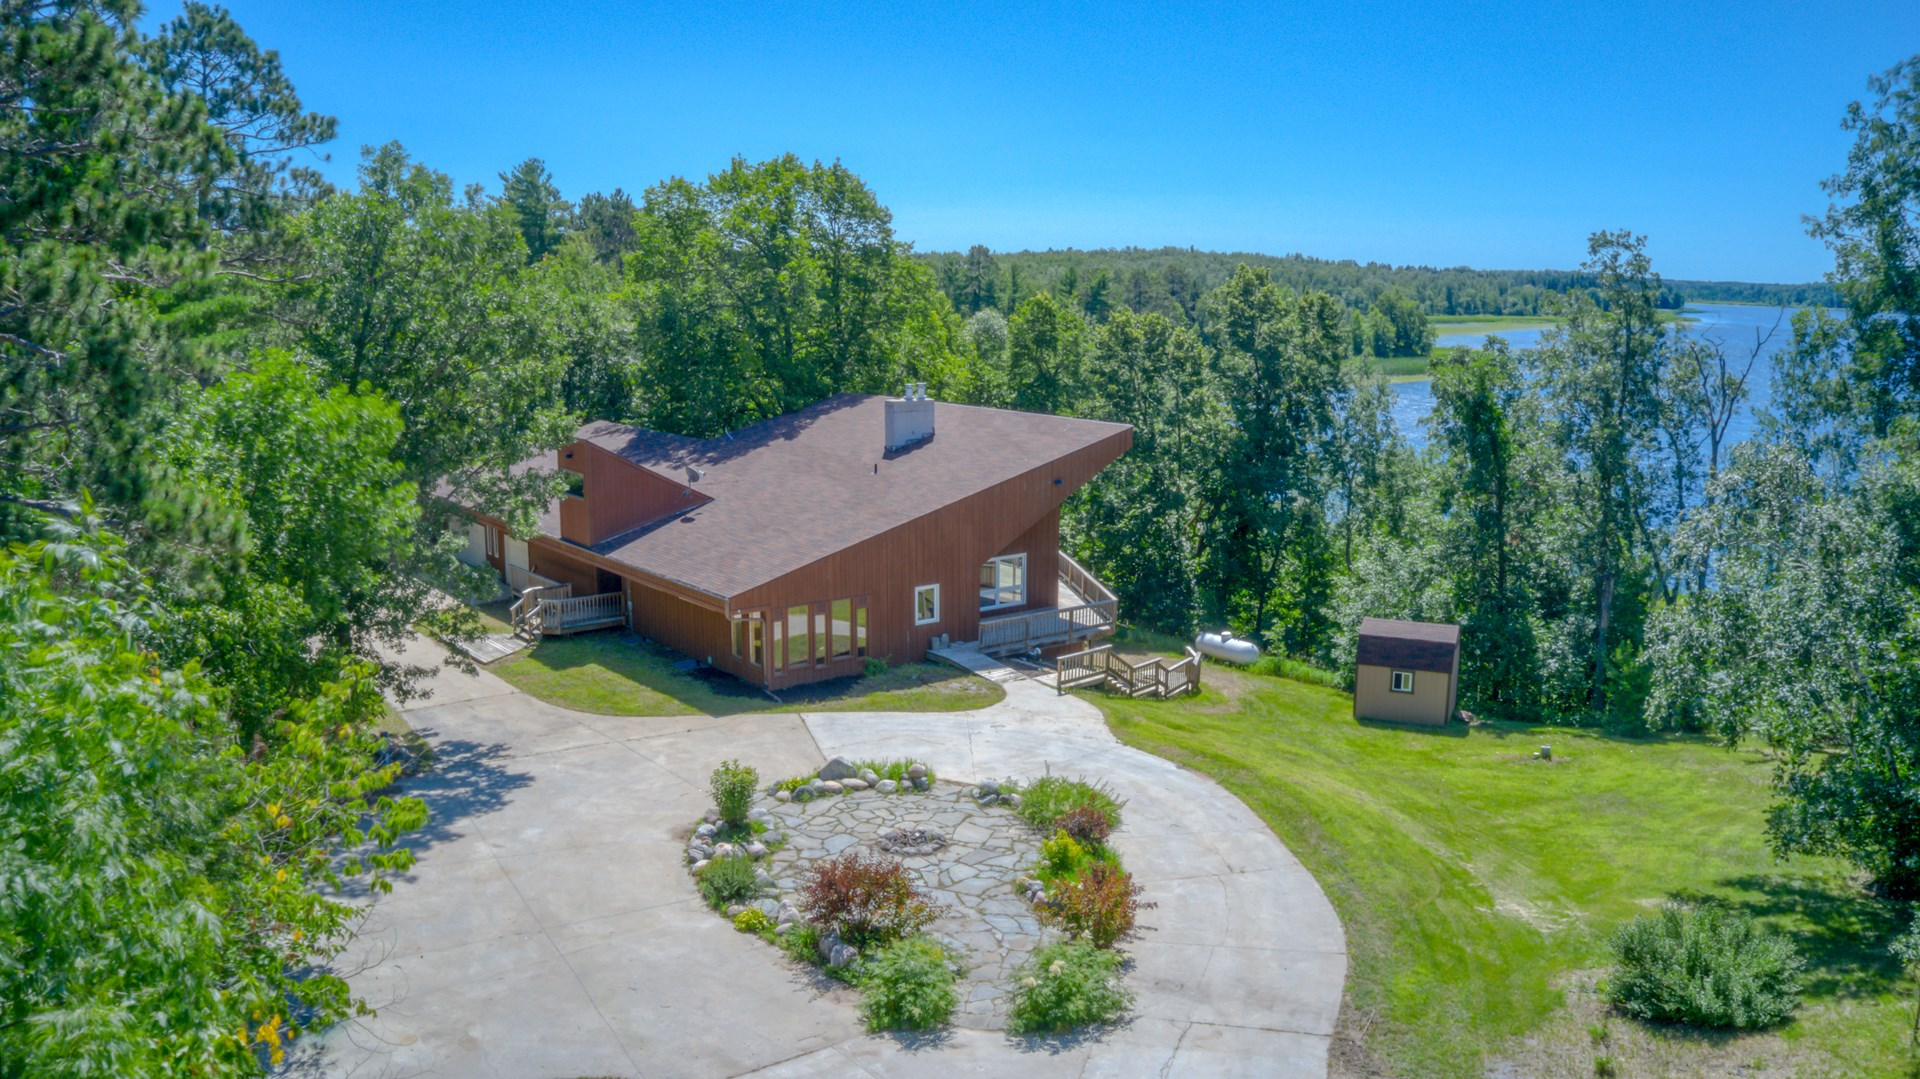 Minnesota Lake Home with Recreational Hunting Land for Sale